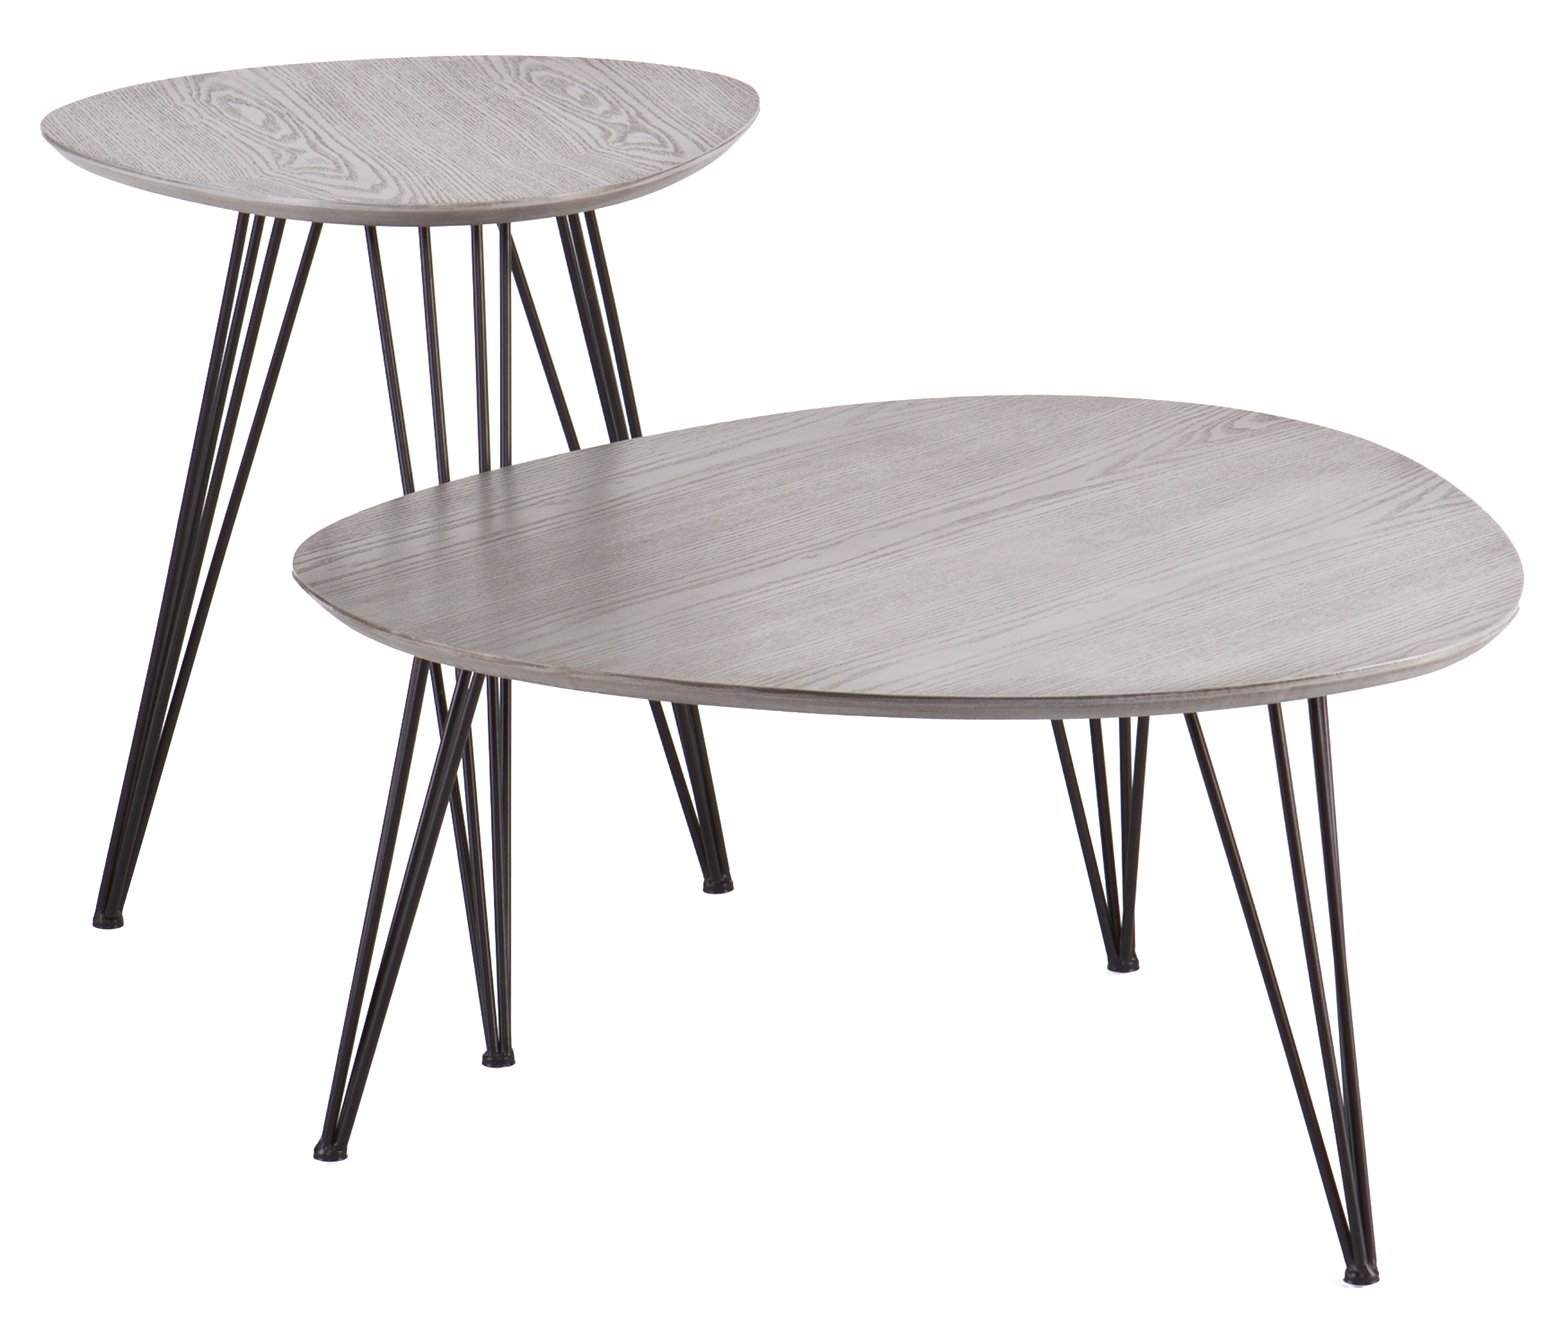 Holly & Martin Bannock Accent Table Set of 2, Matte Gray with Black Finish